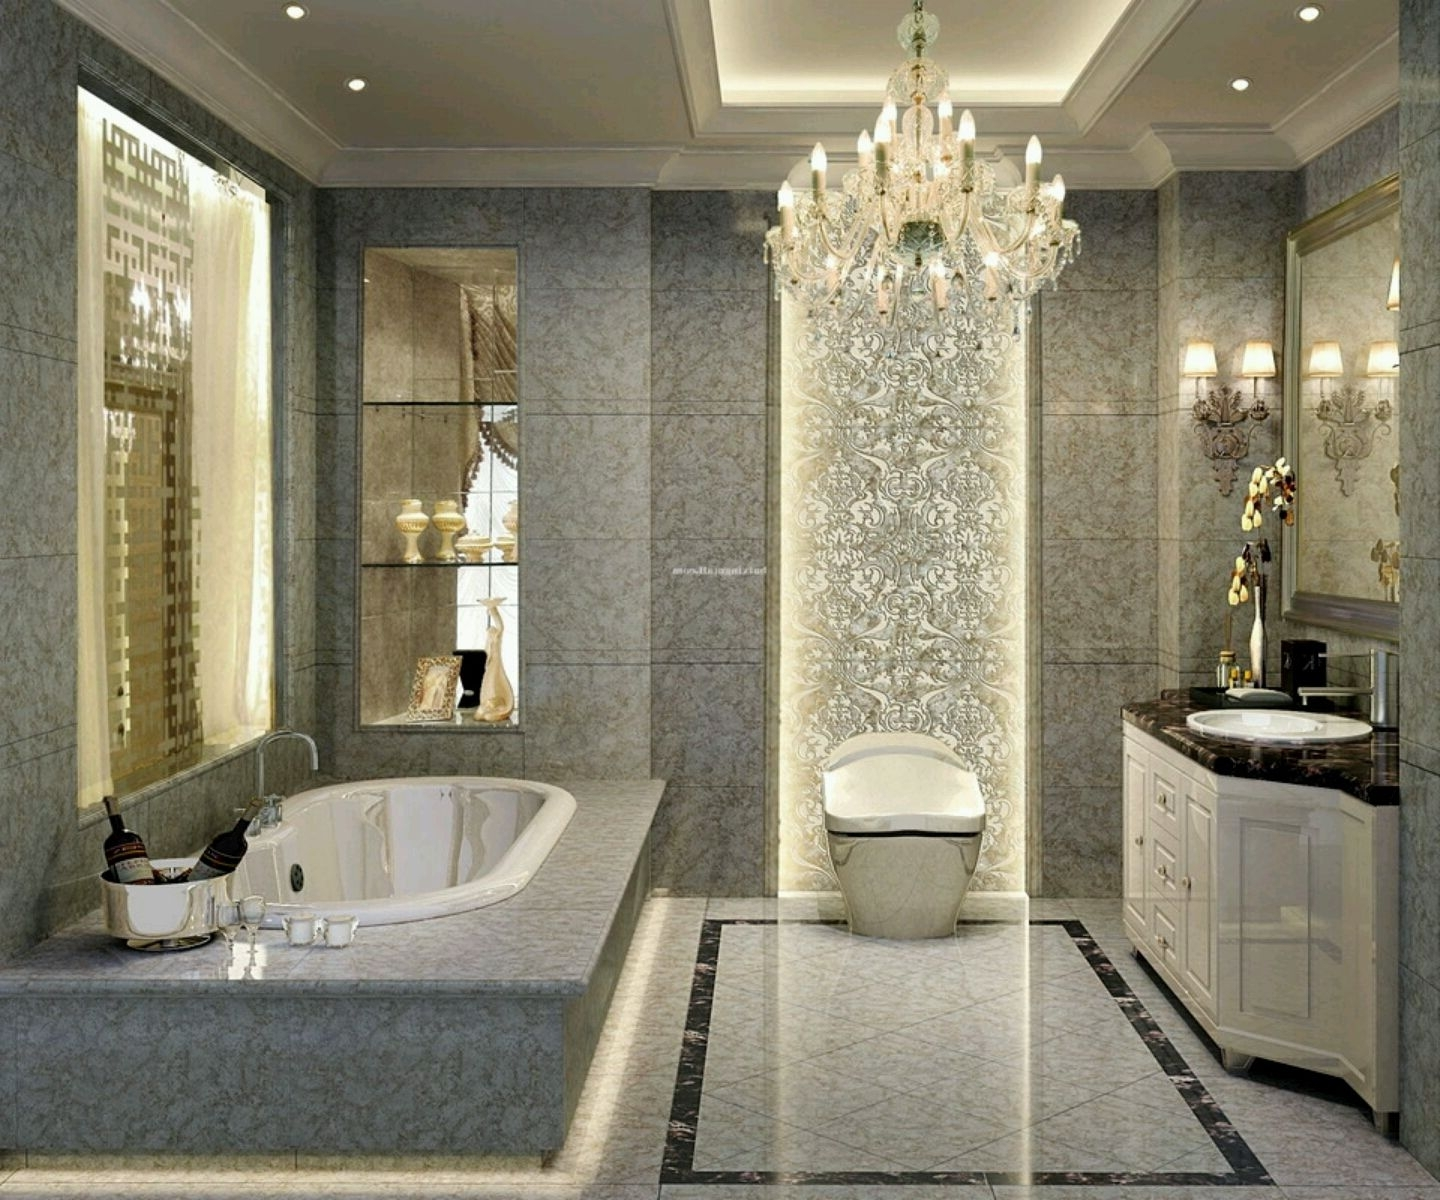 Chandeliers For Bathrooms Uk Chandeliers For Bathroom Throughout Chandeliers For The Bathroom (Image 14 of 25)